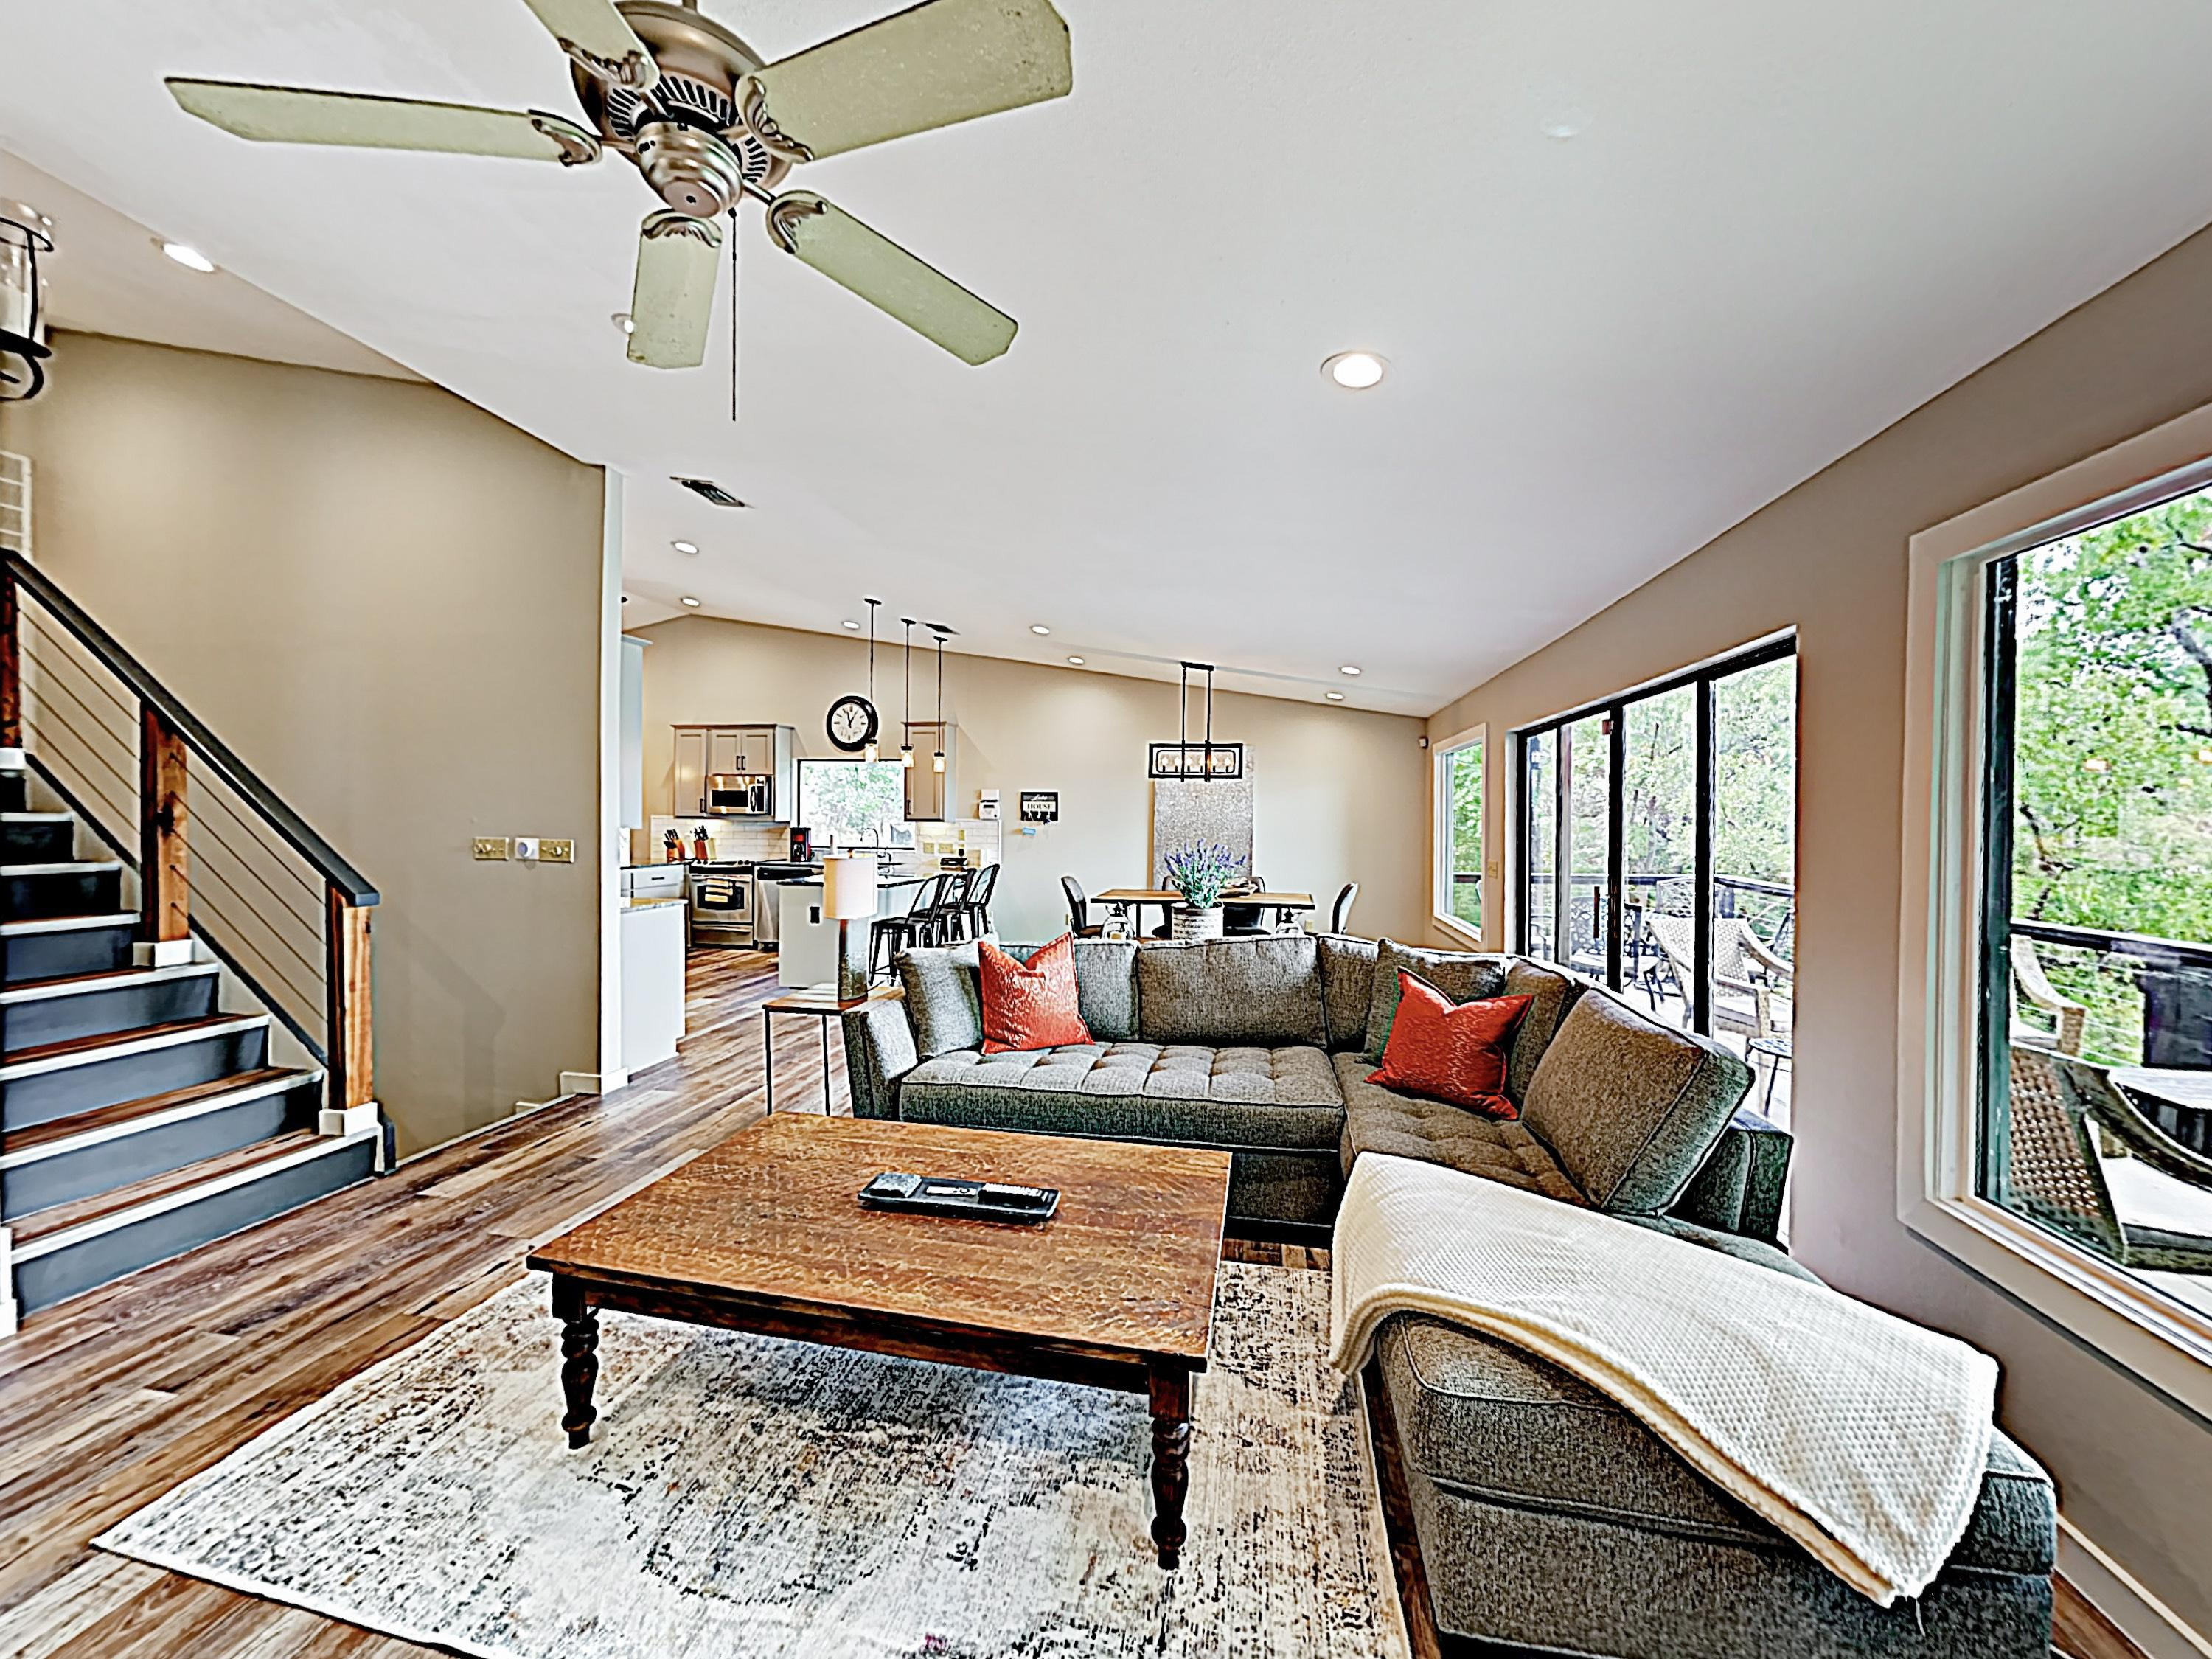 Welcome to Lake Travis! This home is professionally managed by TurnKey Vacation Rentals.